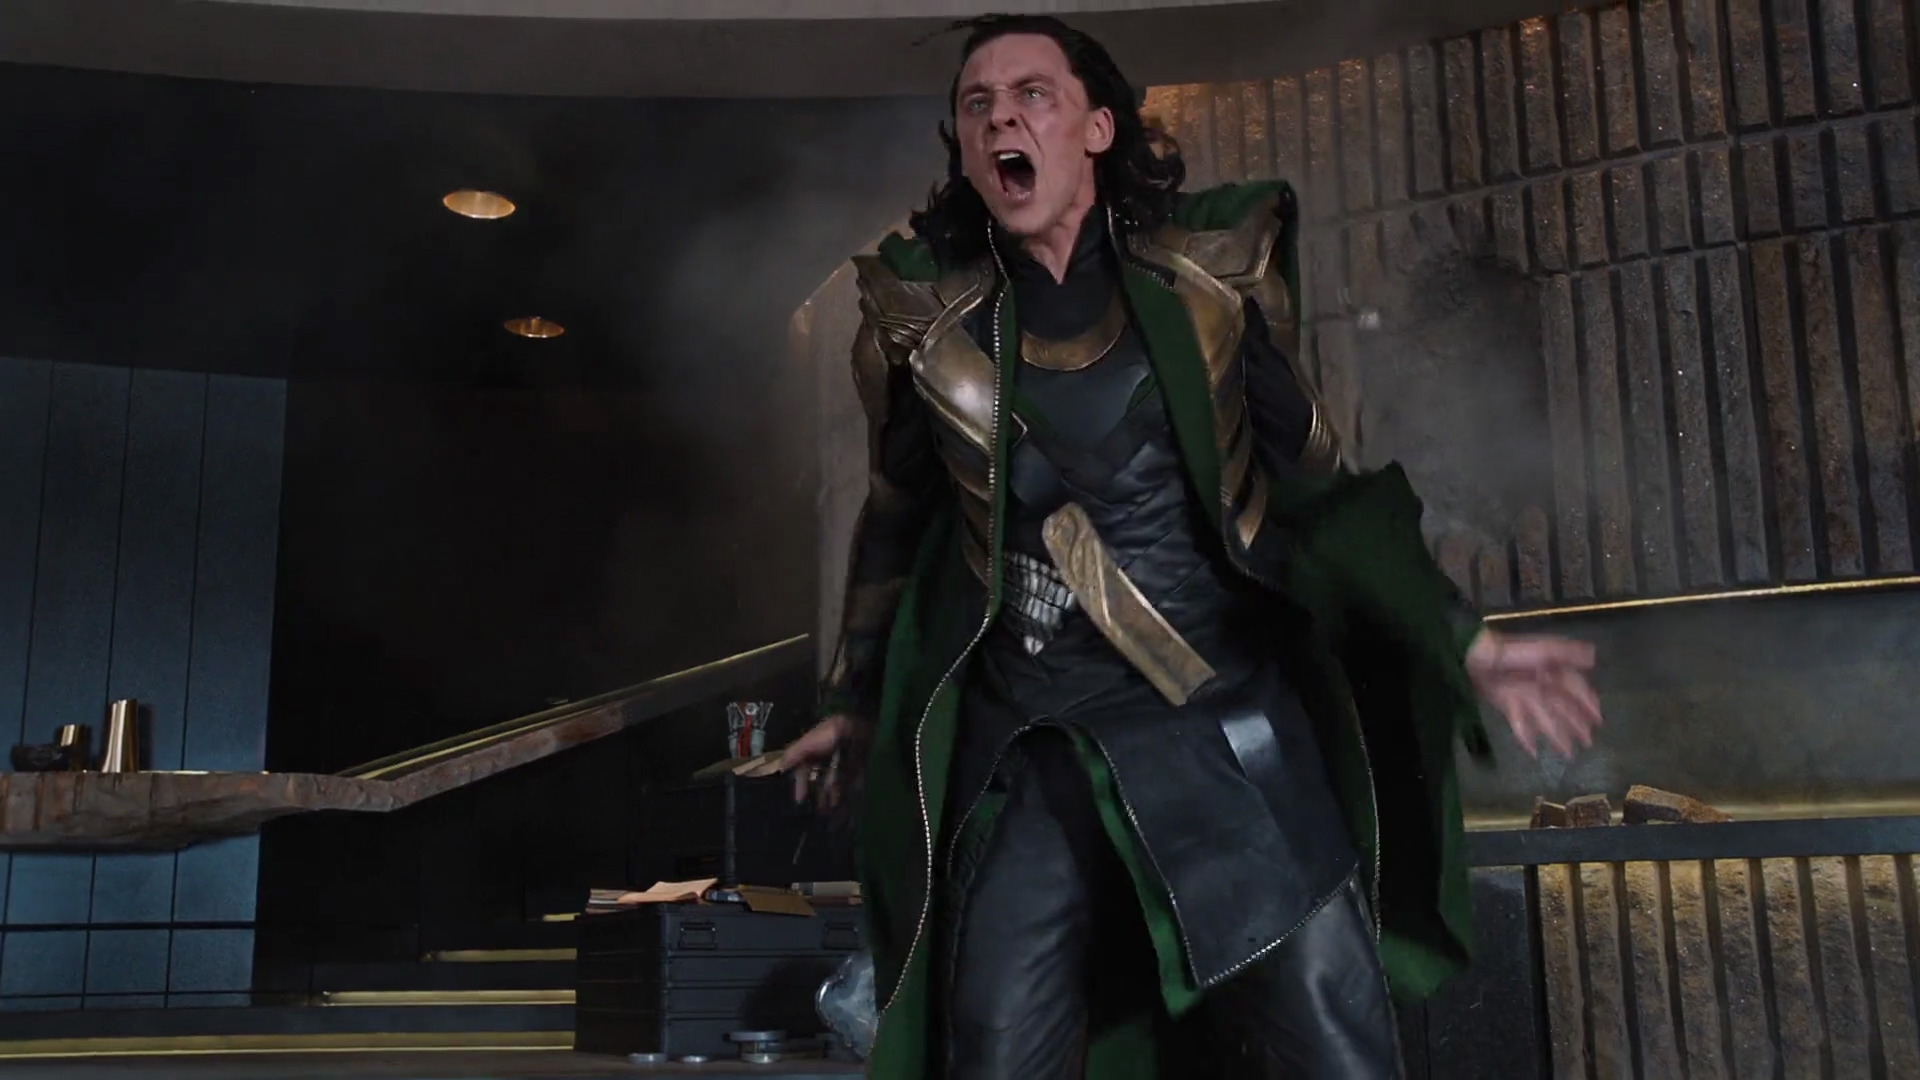 The Avengers The Avengers Climax - Loki